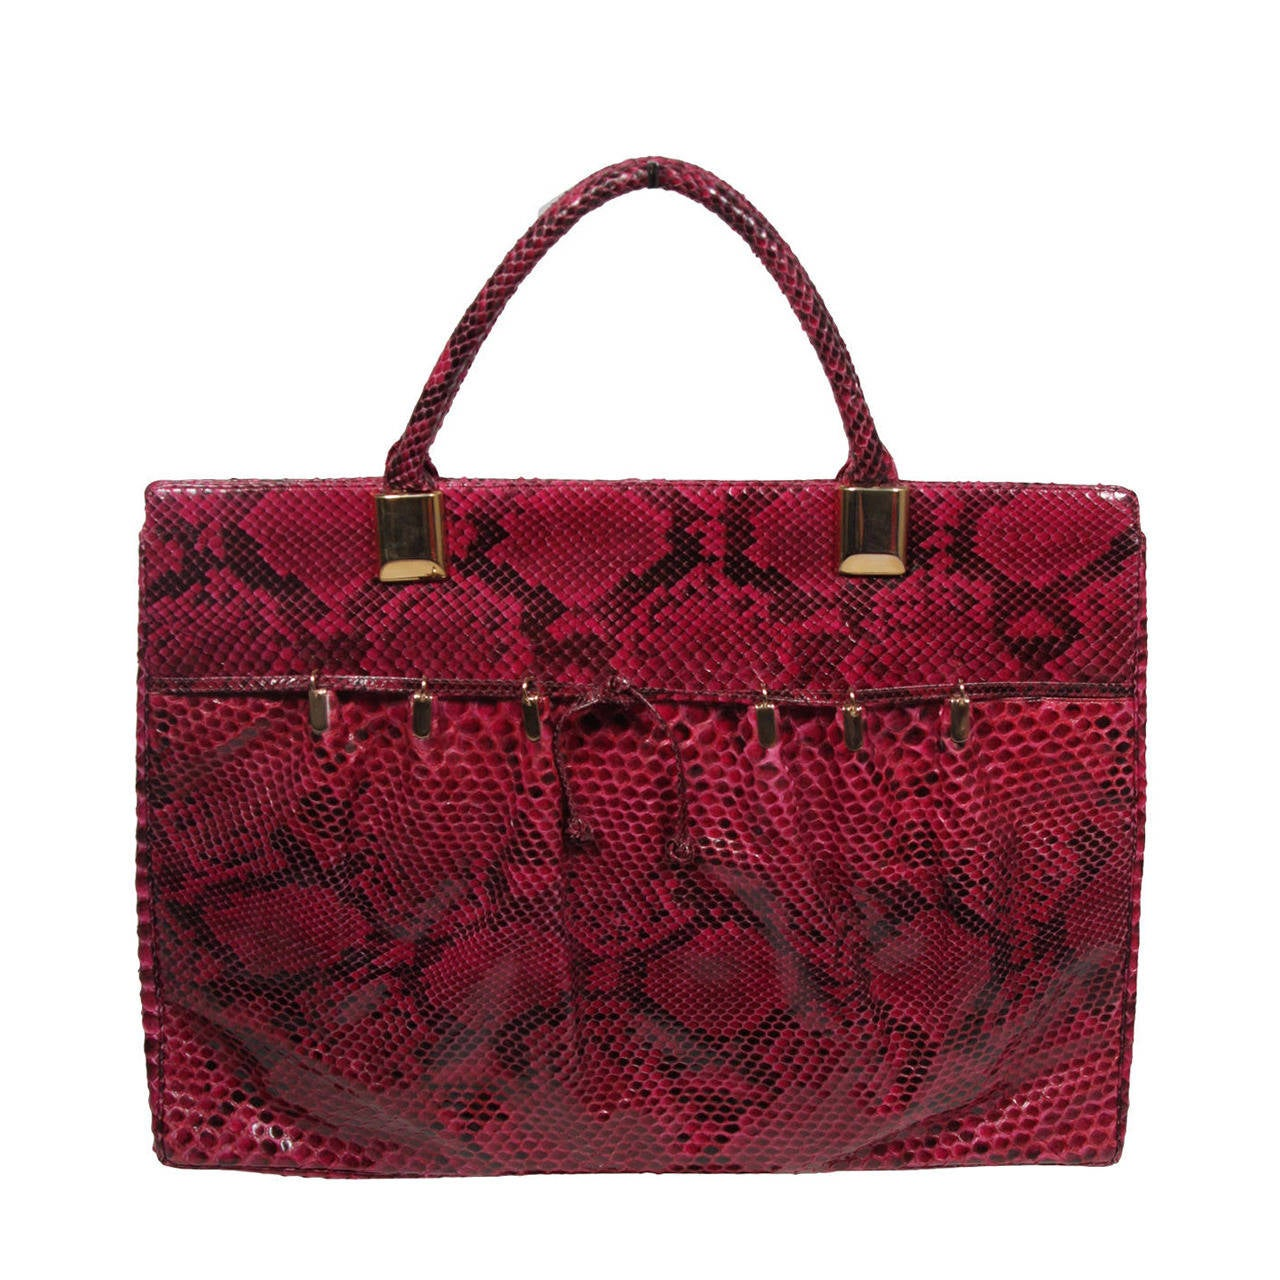 1980's Judith Leiber Extra Large Magenta Snakeskin Tote with Gold Hardware 1